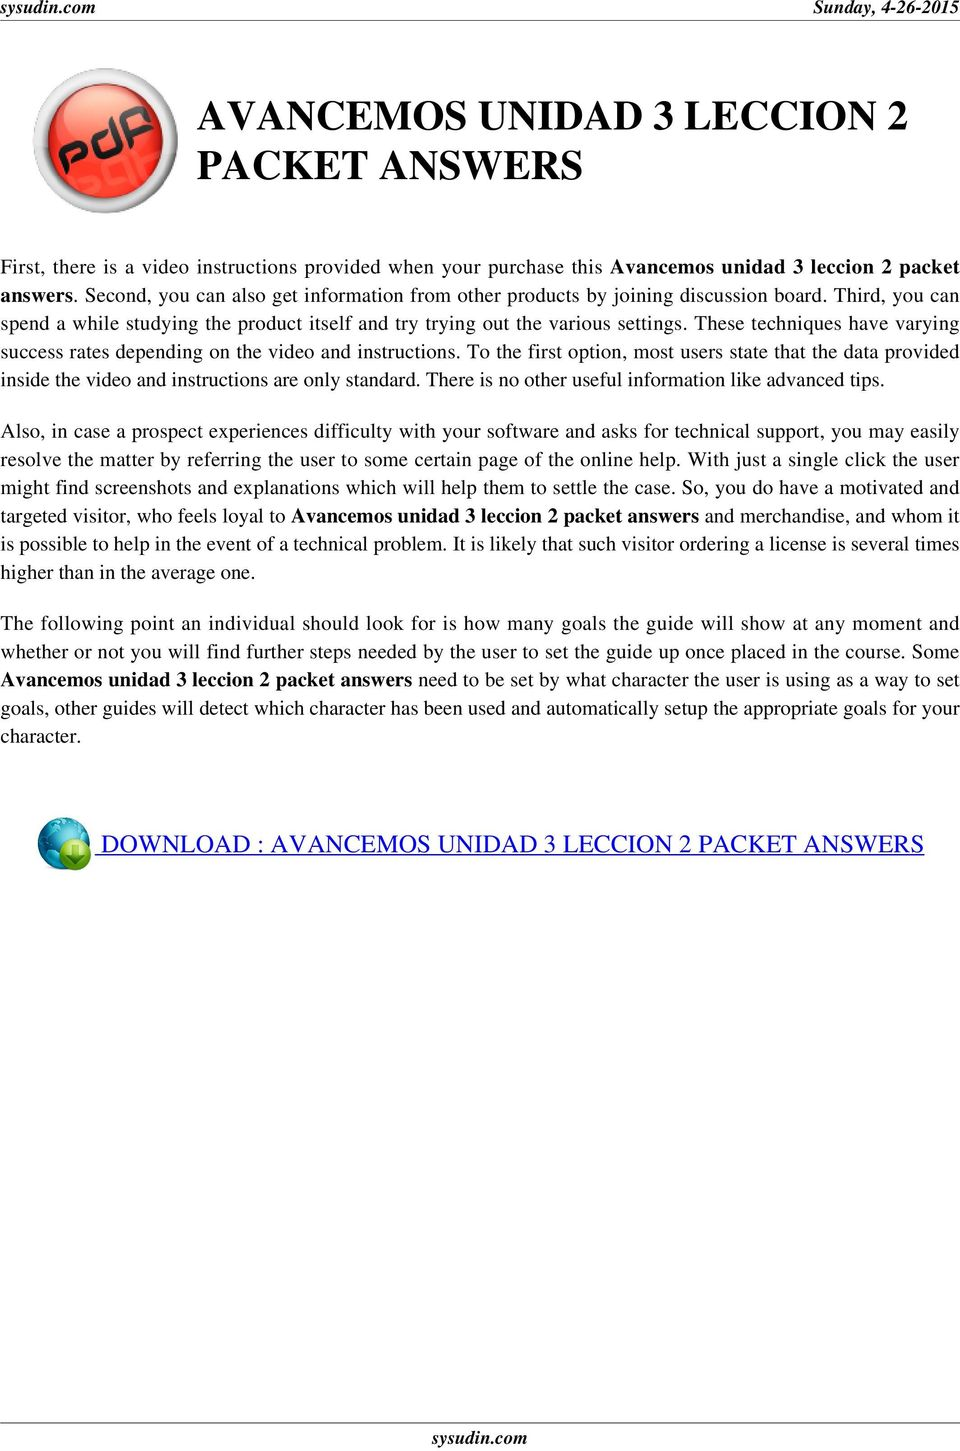 avancemos unidad 3 leccion 2 packet answers : The User's Guide - PDF